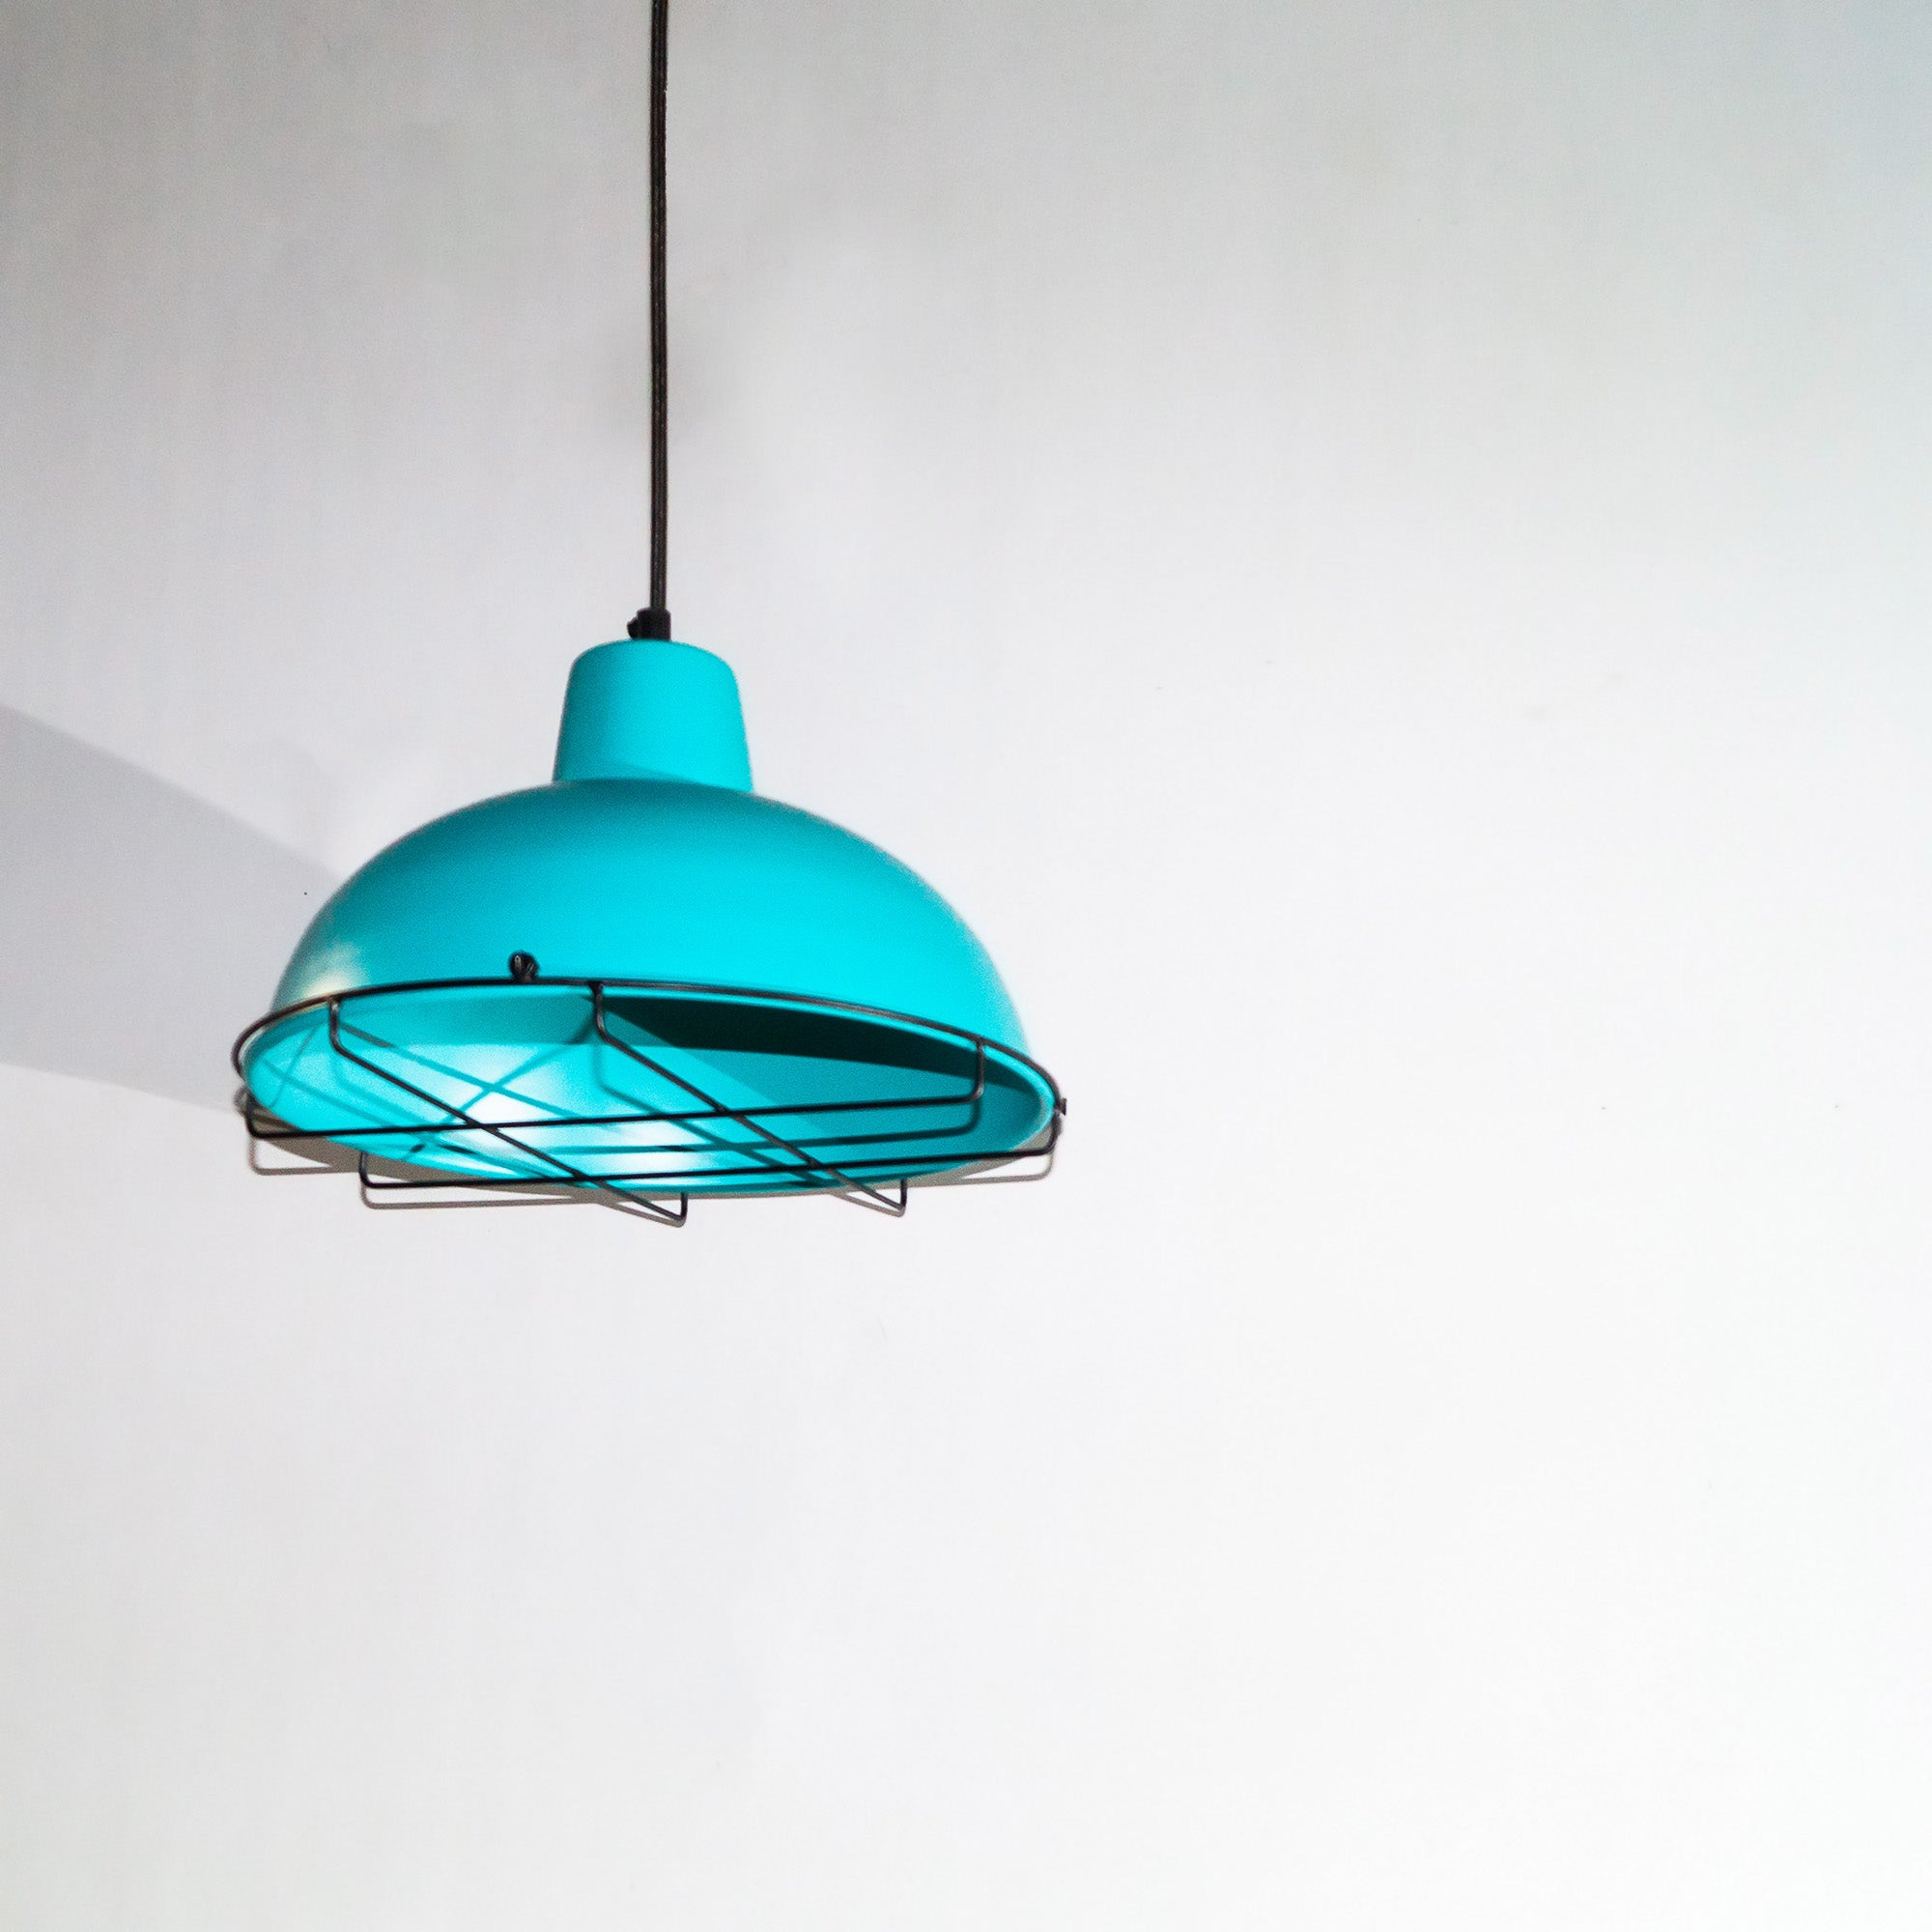 CLH110 Turquoise Blue Industrial Hanging Lamp